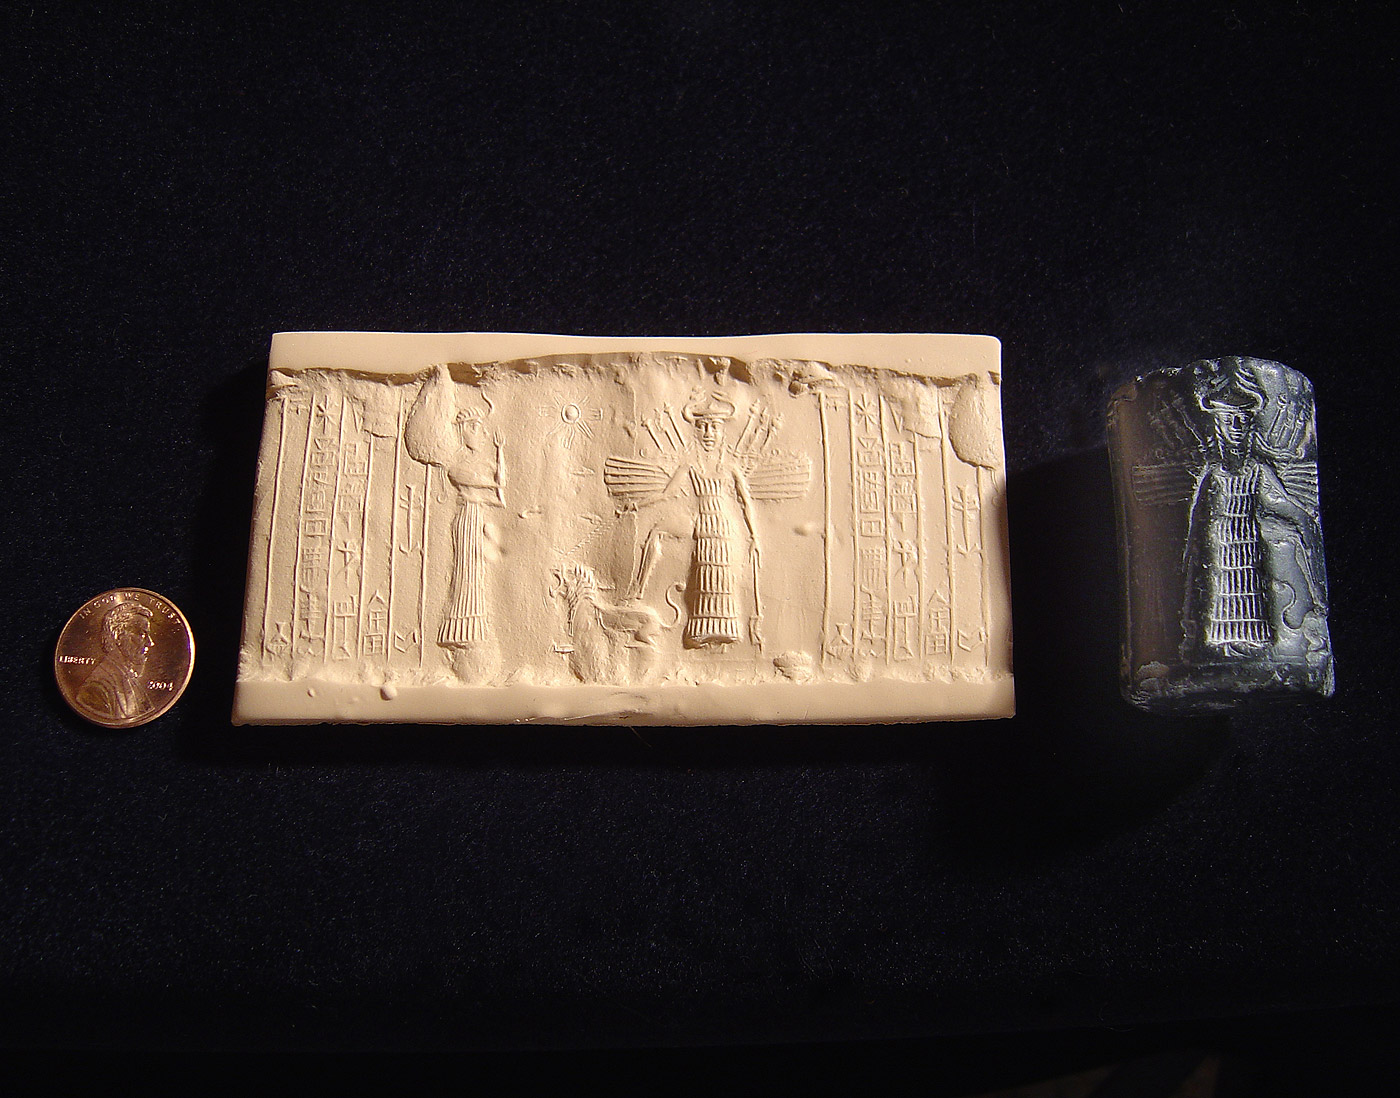 3r - seal artefact of the goddesses Ninshubur, & Inanna with powerful alien weapons standing upon Zodiac sign Leo